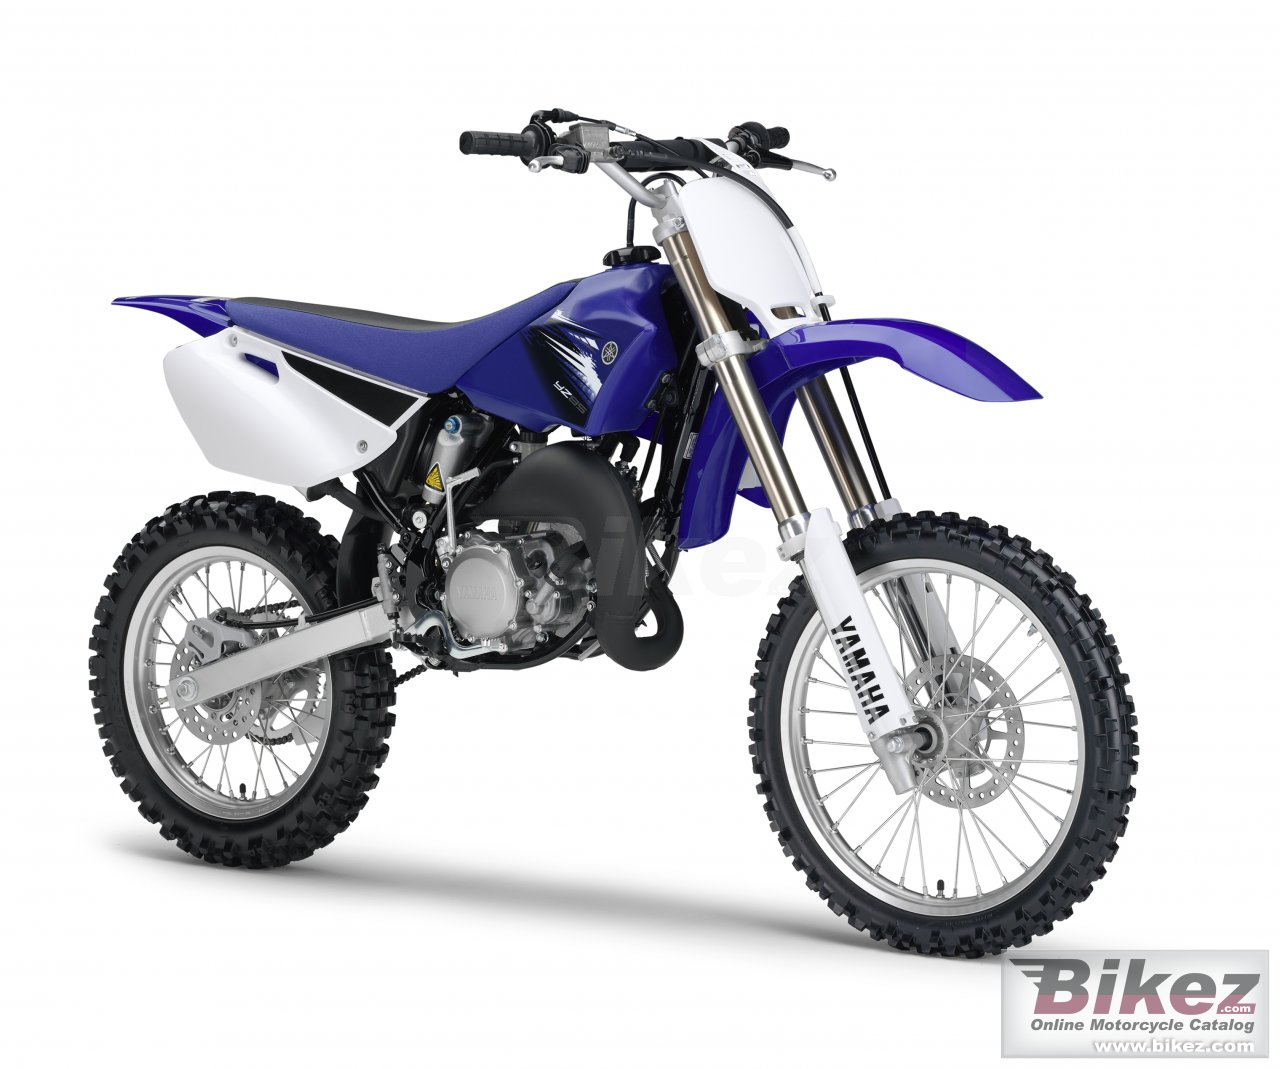 Big Yamaha yz85lw picture and wallpaper from Bikez.com